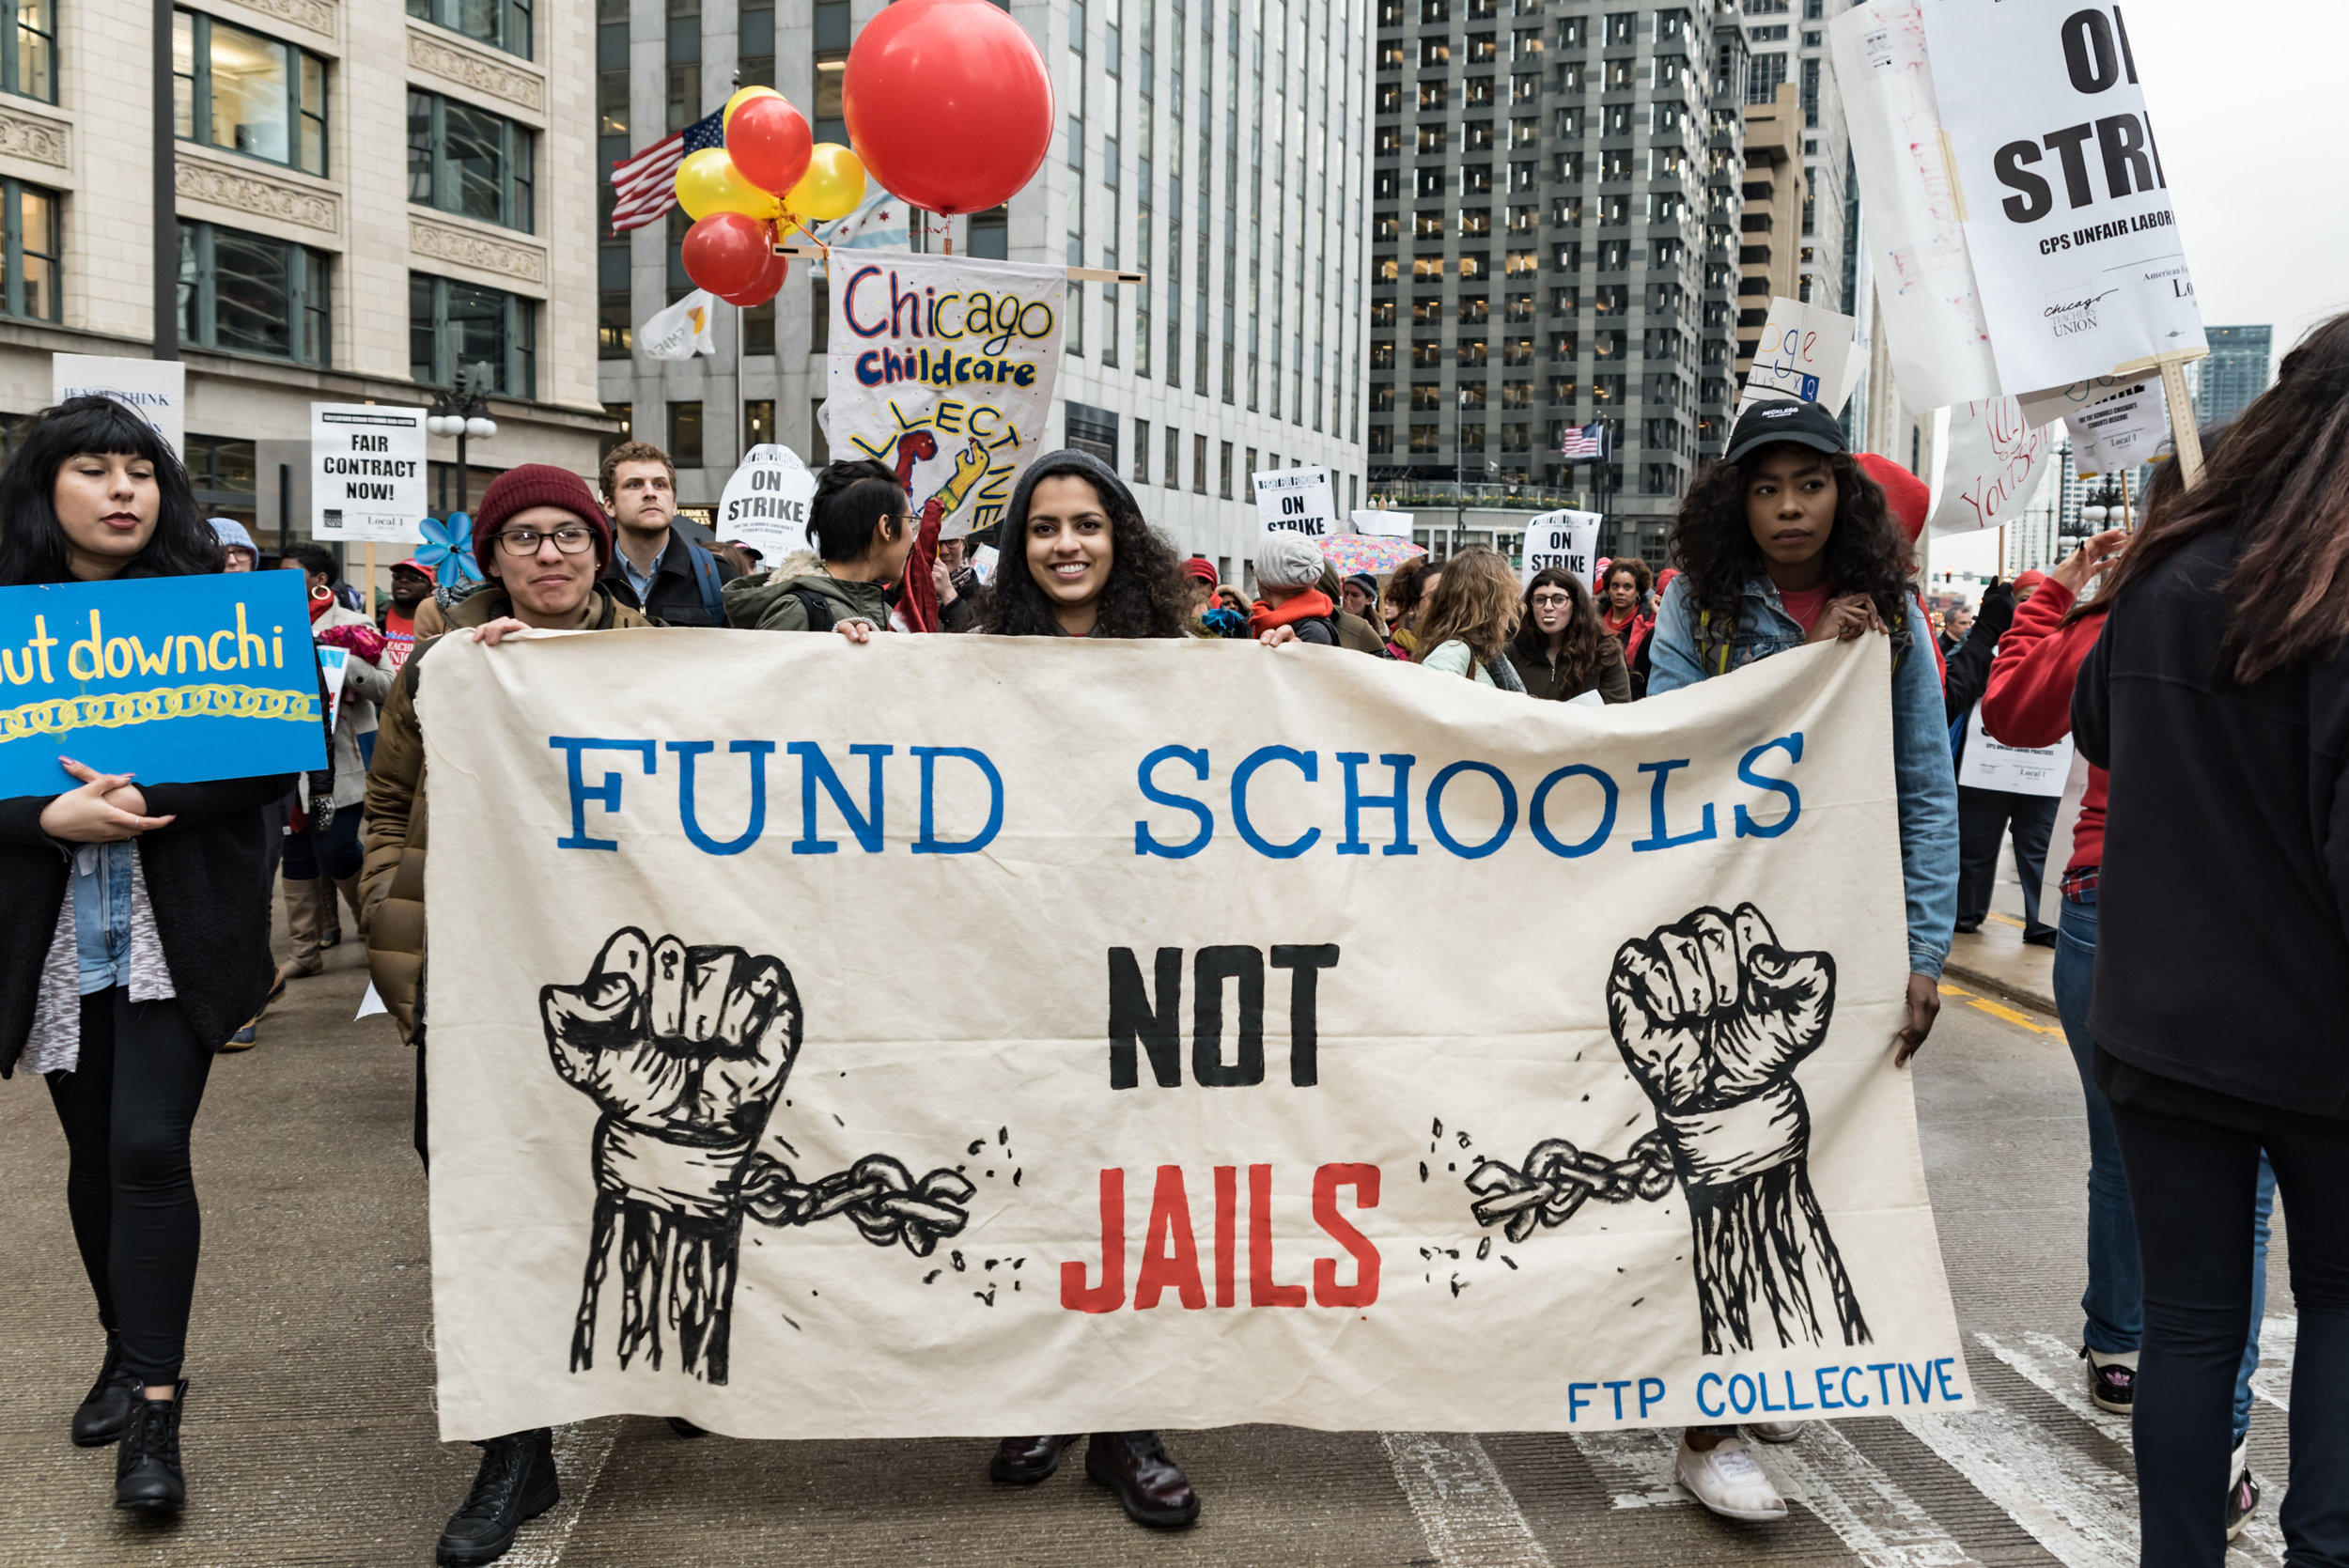 """Image: Photo of a group of people rallying in downtown Chicago. In the center of the image are three people of color holding up a sign which says: """"Fund Schools Not Jails"""" in the center. On either side of the words are images of painted fists with broken shackles around the wrists. On the bottom right of the poster is """"FTP Collective."""" Photo was taken April 2016 at the Shut Down the Chi Rally. Photo courtesy of the artist."""